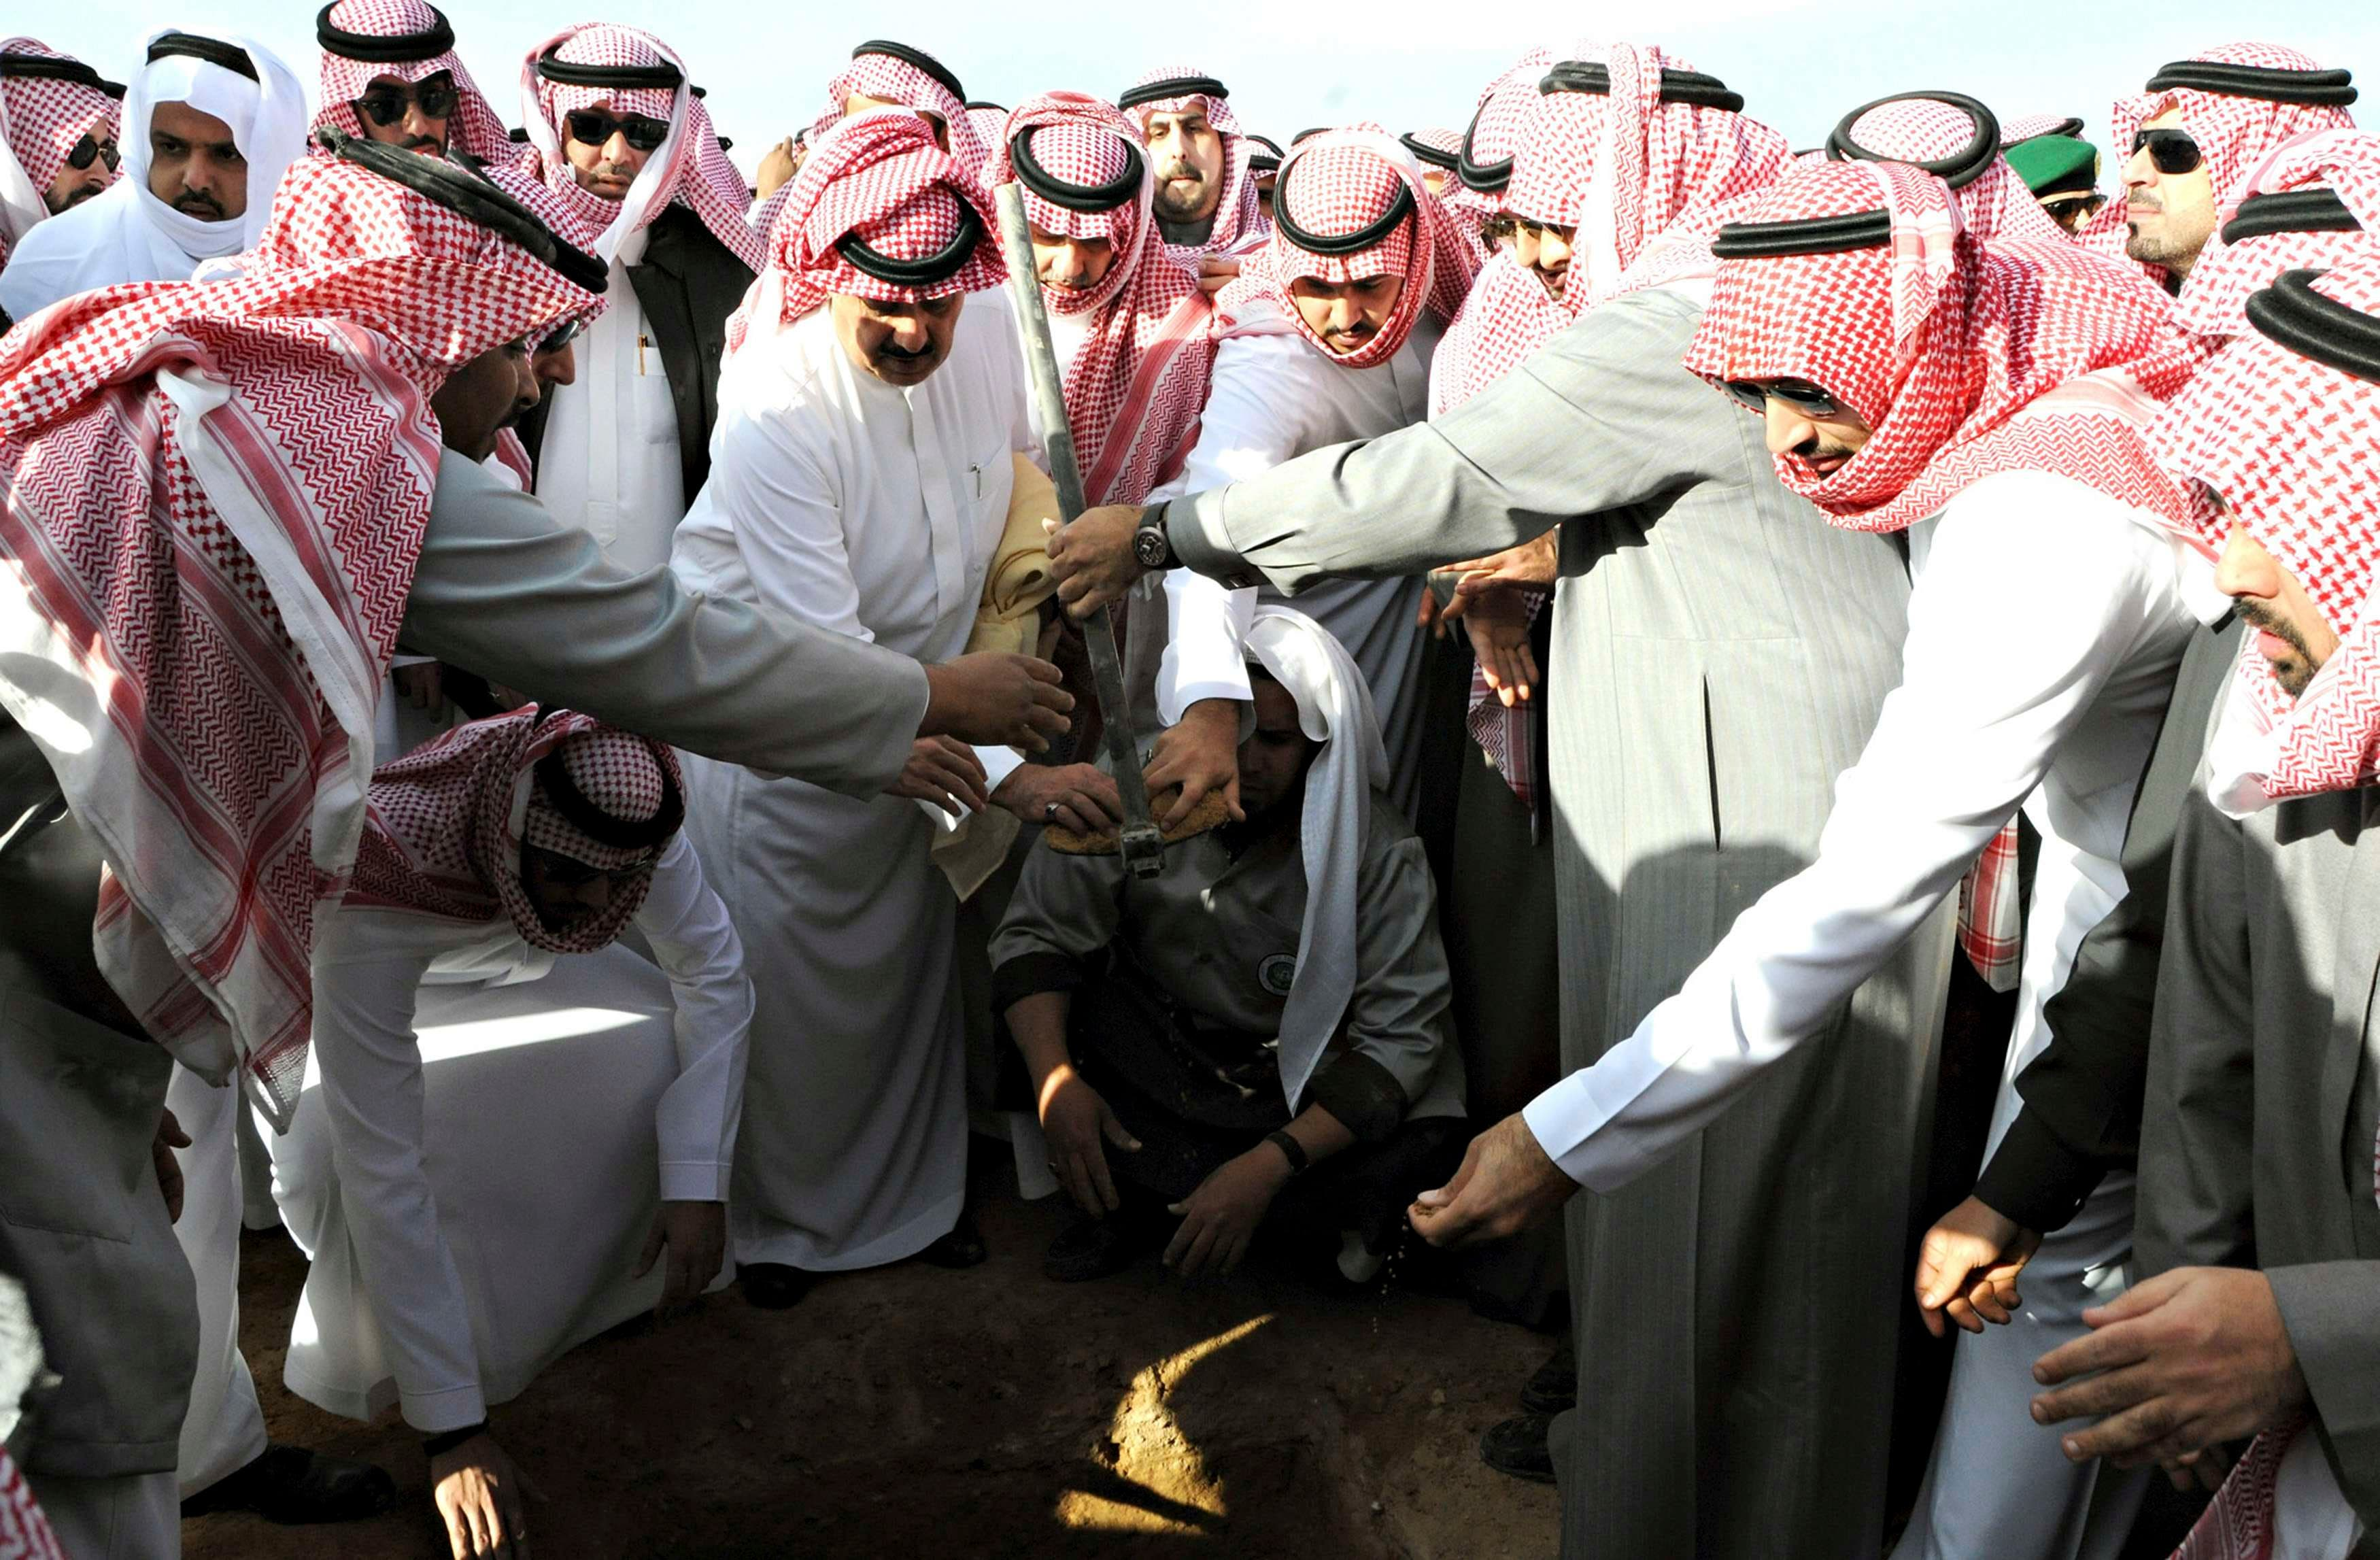 Mourners bury the body of Saudi King Abdullah during his funeral in Riyadh January 23, 2015, in this handout photo provided by Saudi Press Agency. (Reuters)